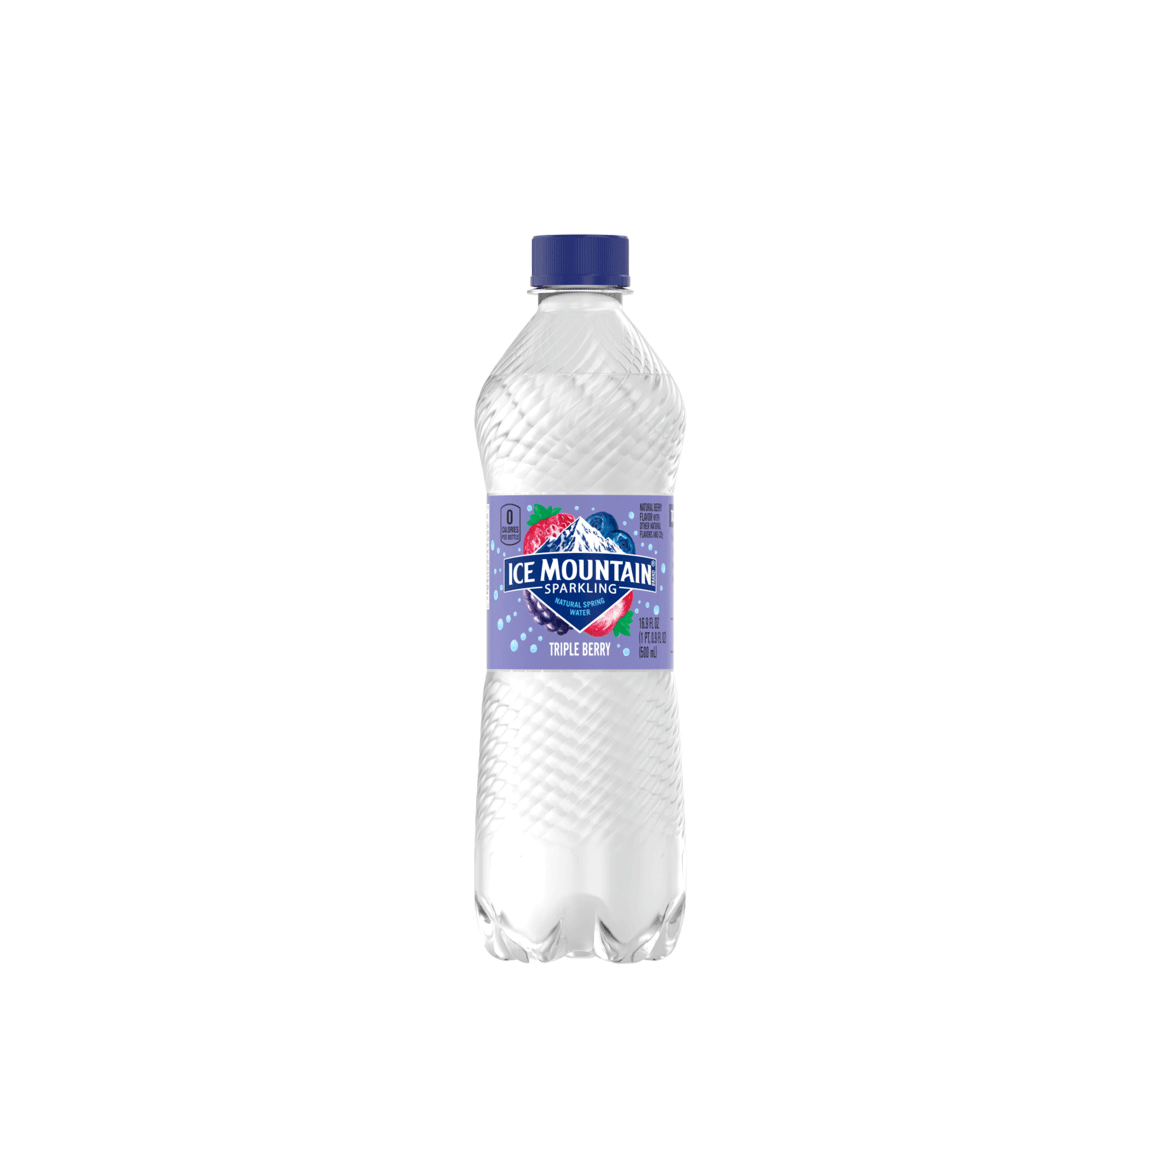 Ice Mountain® Triple Berry Sparkling Water Image2